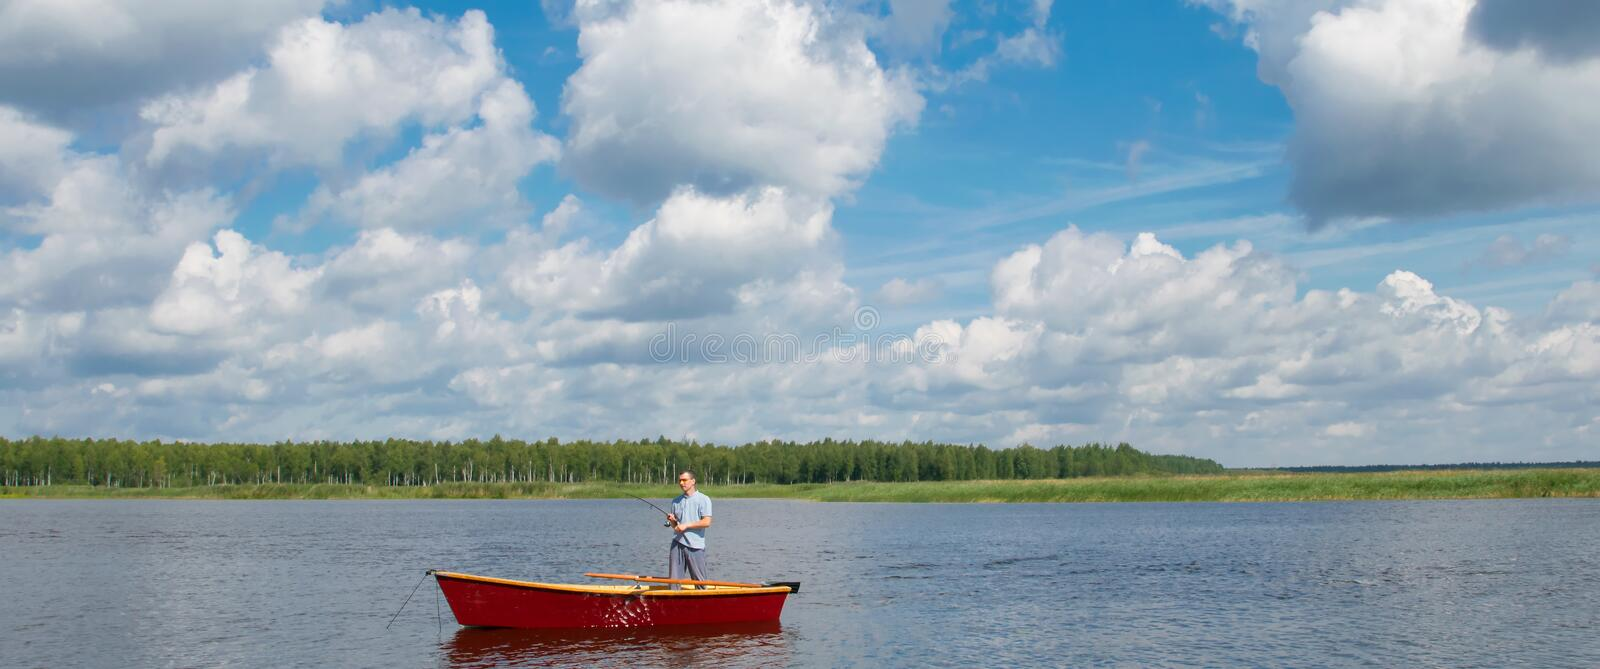 A man in a boat, in the center of the lake, holds a fishing pole to catch a big fish, against a beautiful sky stock image